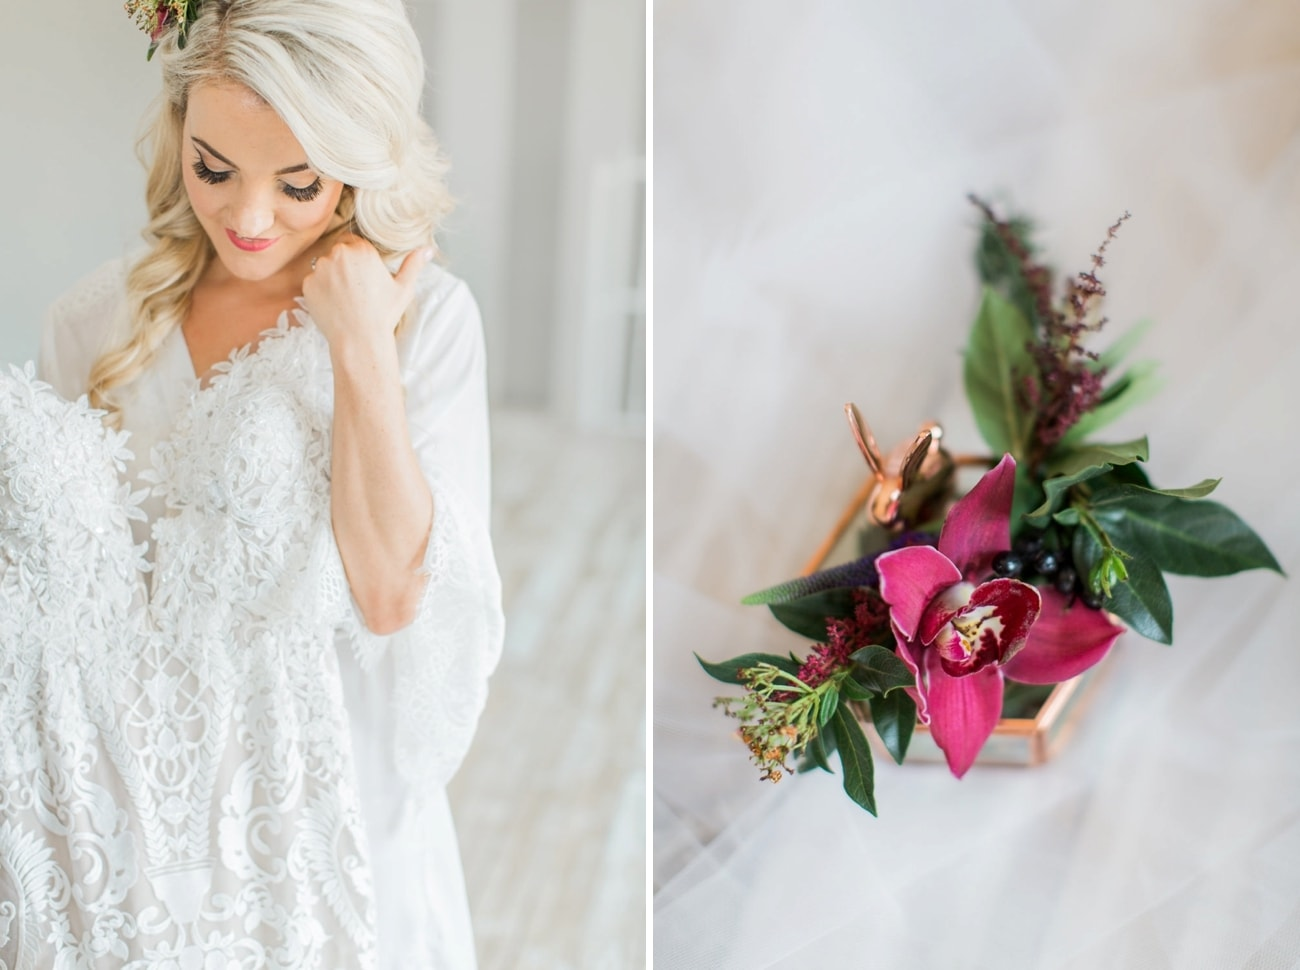 Casey Jeanne Wedding Dress | Image: Grace Studios